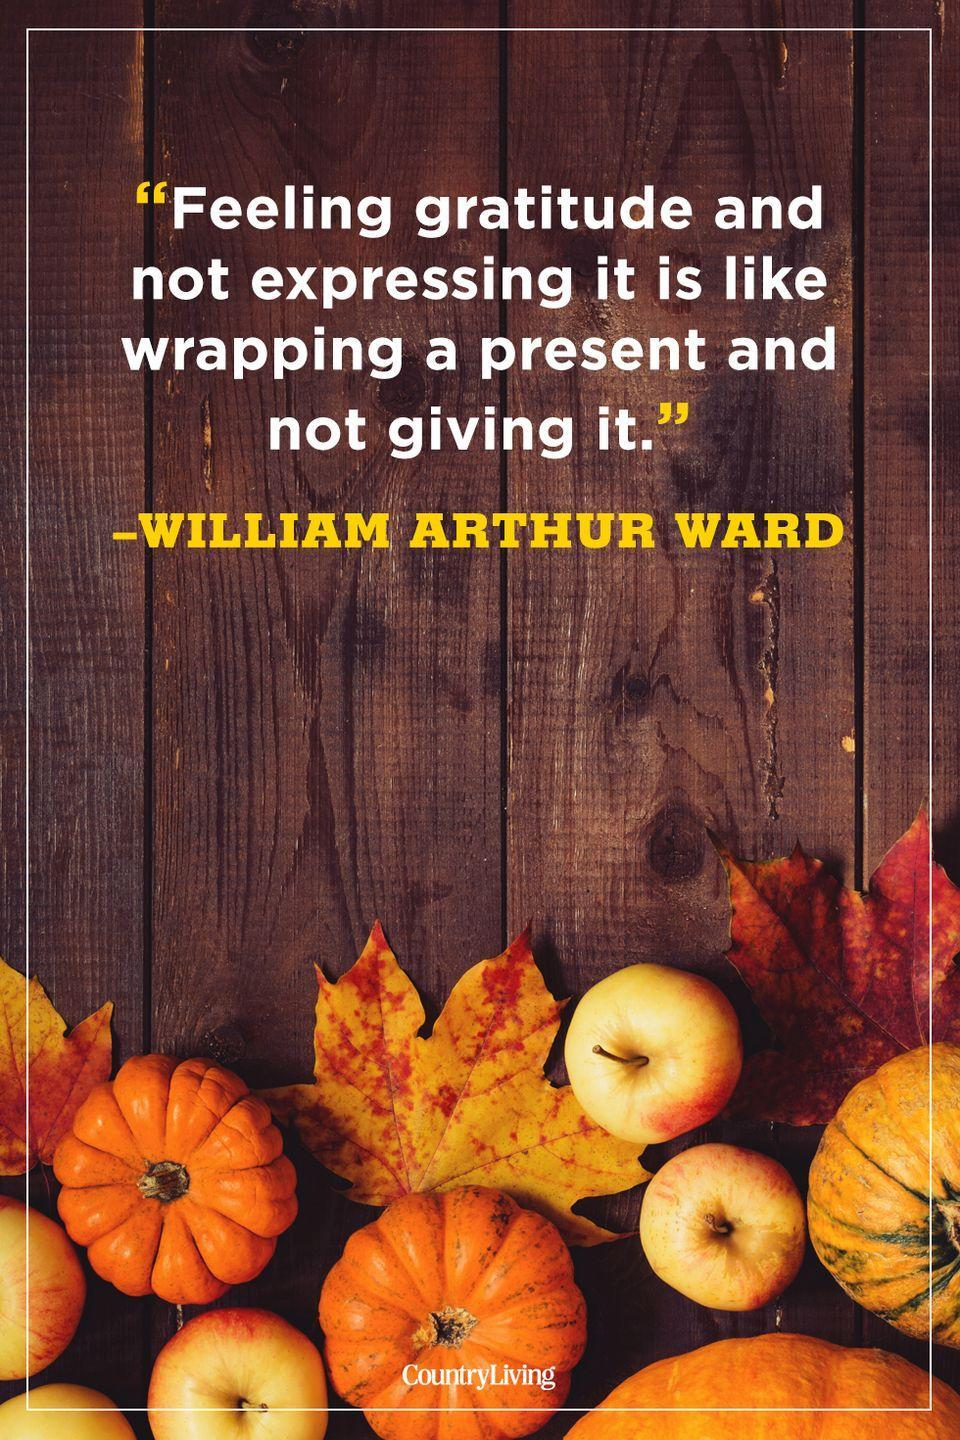 """<p>""""Feeling gratitude and not expressing it is like wrapping a present and not giving it.""""</p><p><strong>RELATED: </strong><a href=""""https://www.countryliving.com/entertaining/g634/thanksgiving-table-settings-1108/"""" rel=""""nofollow noopener"""" target=""""_blank"""" data-ylk=""""slk:Elegant and Easy Thanksgiving Table Settings"""" class=""""link rapid-noclick-resp"""">Elegant and Easy Thanksgiving Table Settings</a></p>"""